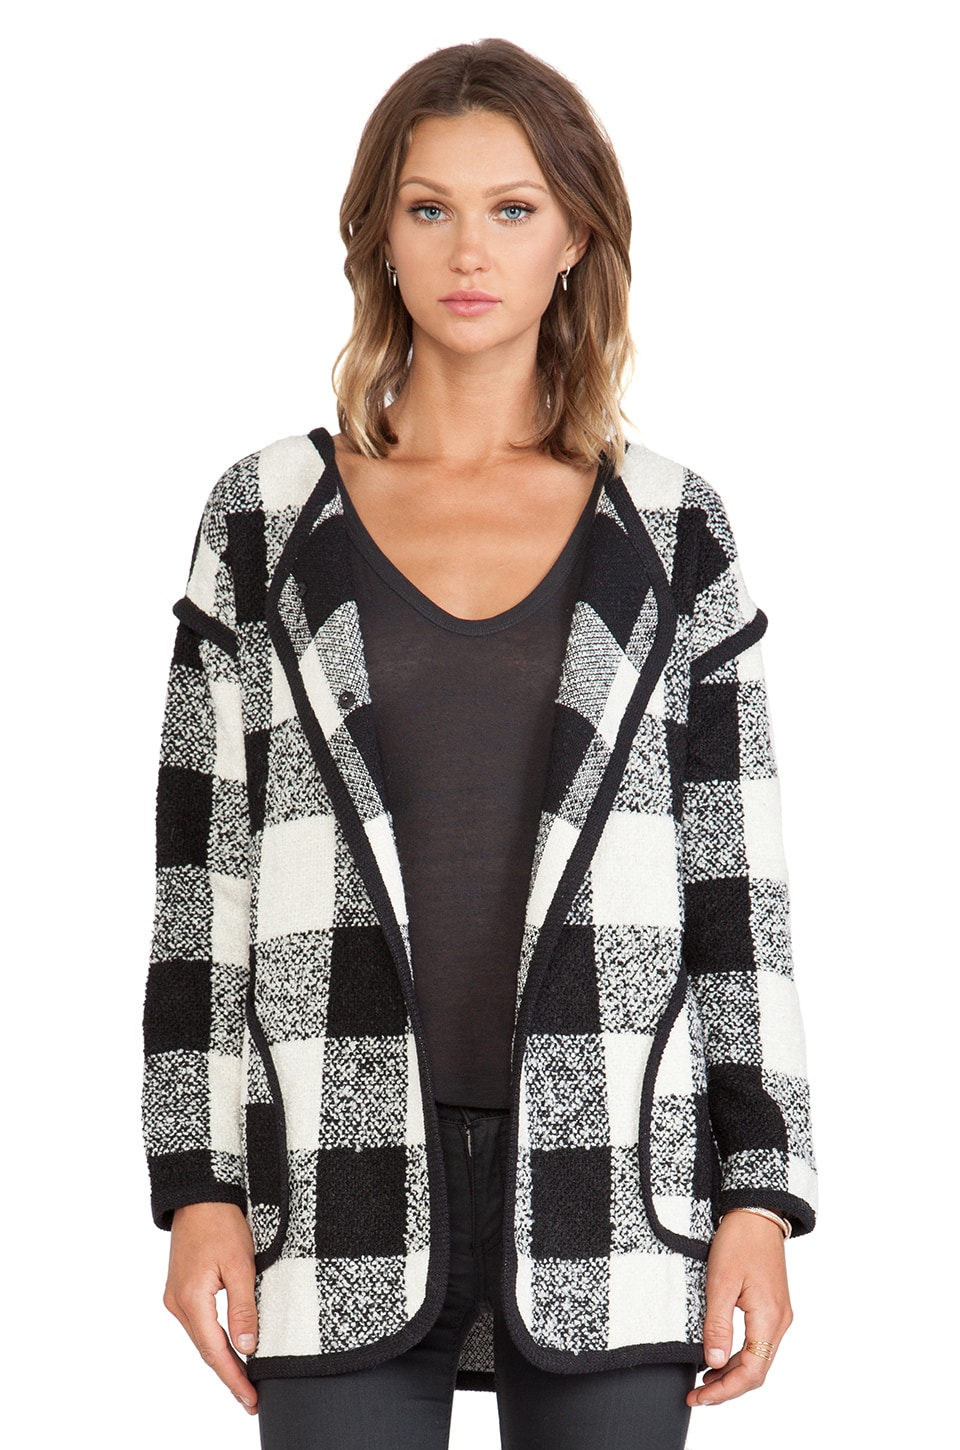 J.O.A. Checker Coat in Black & White